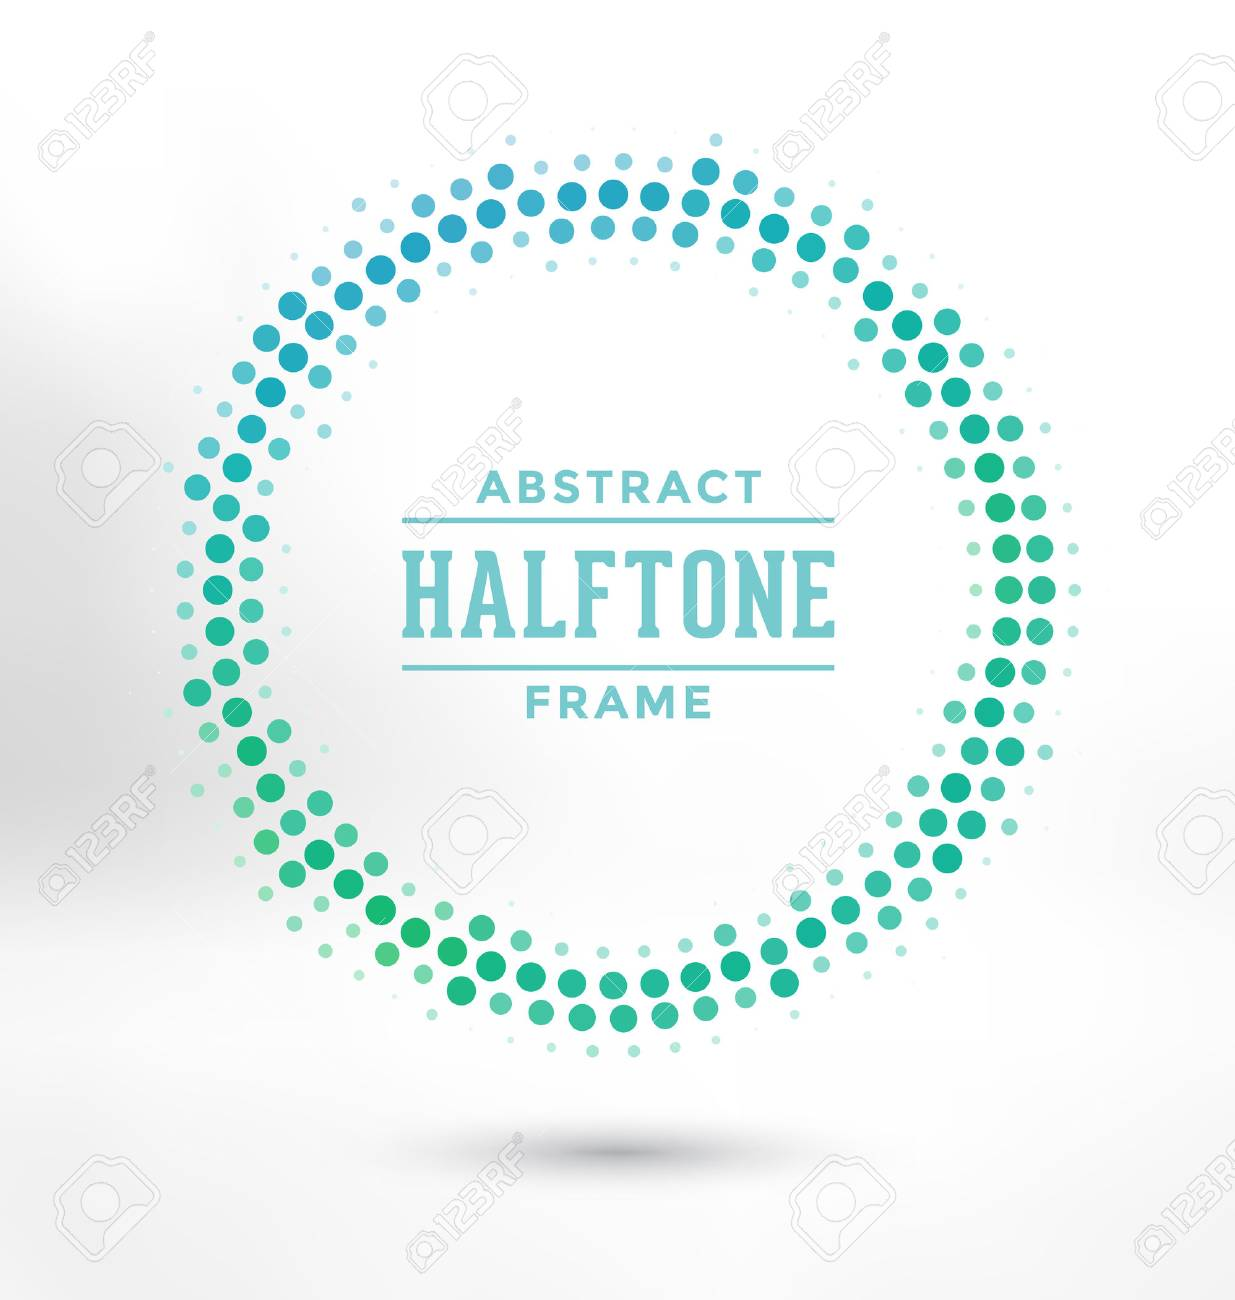 Abstract Halftone Circle Frame - Colorful Design - 45168592